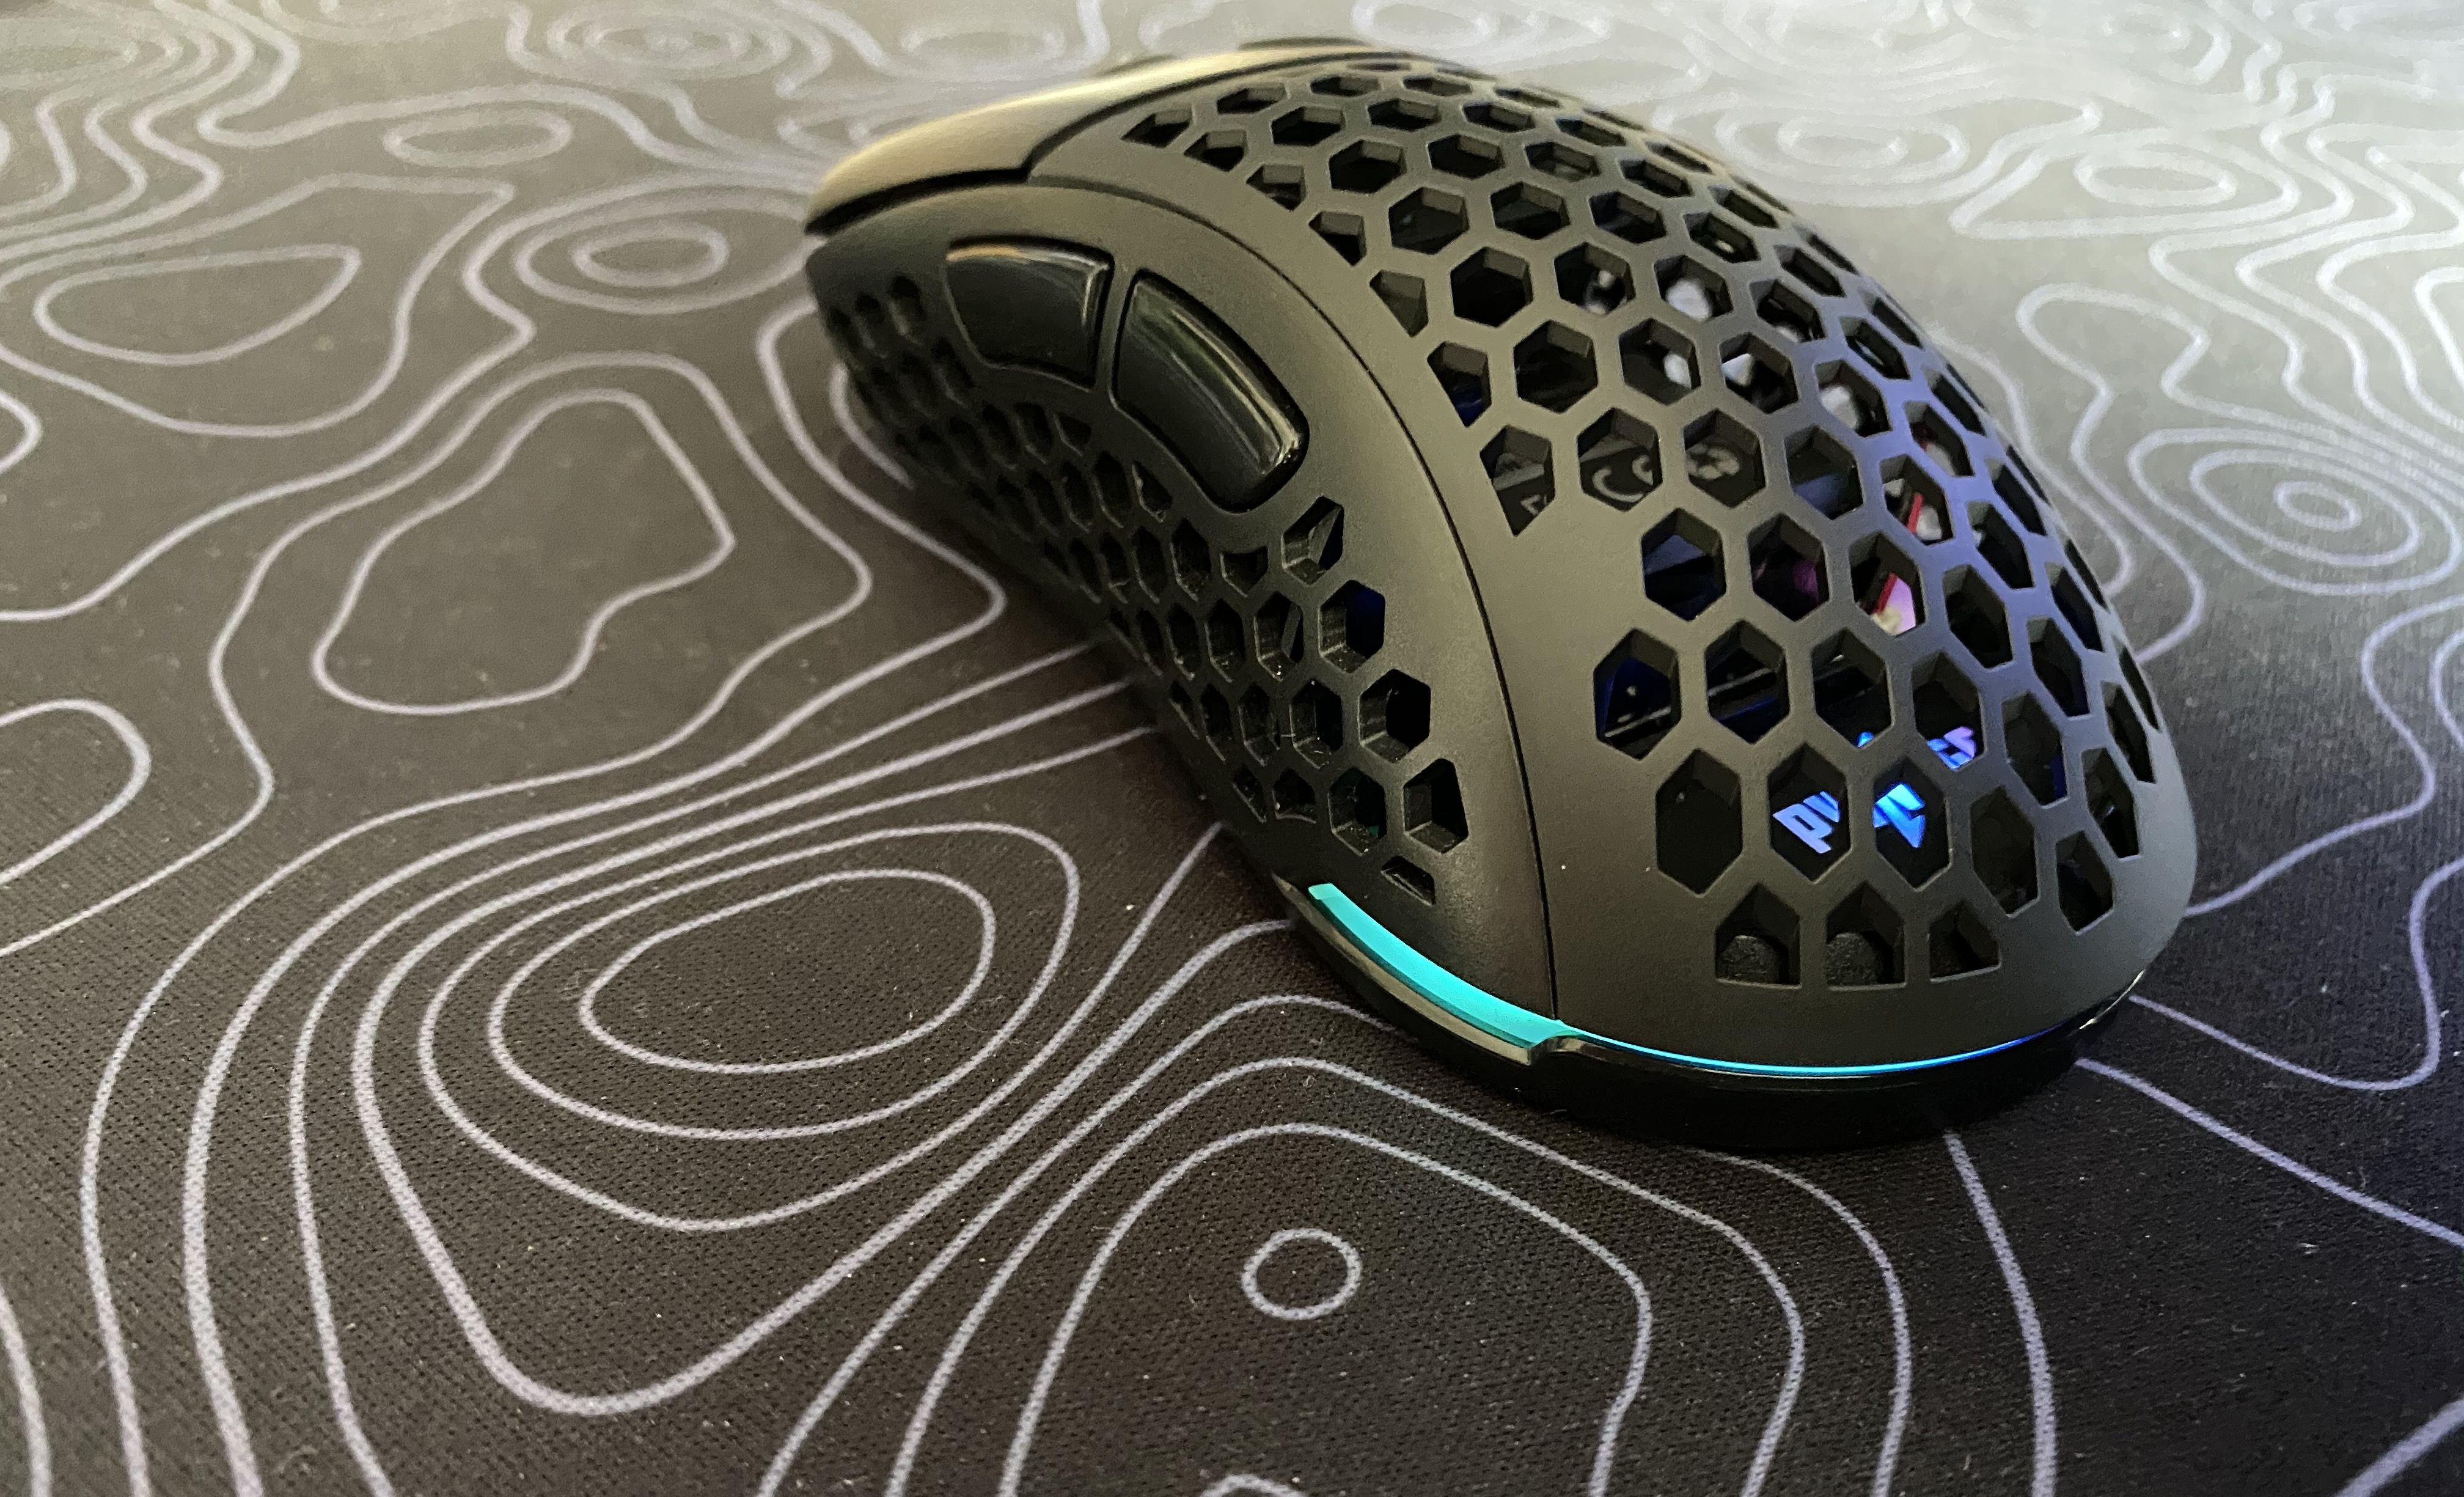 Close to perfection: Pwnage Ultra Custom lightweight wireless mouse review